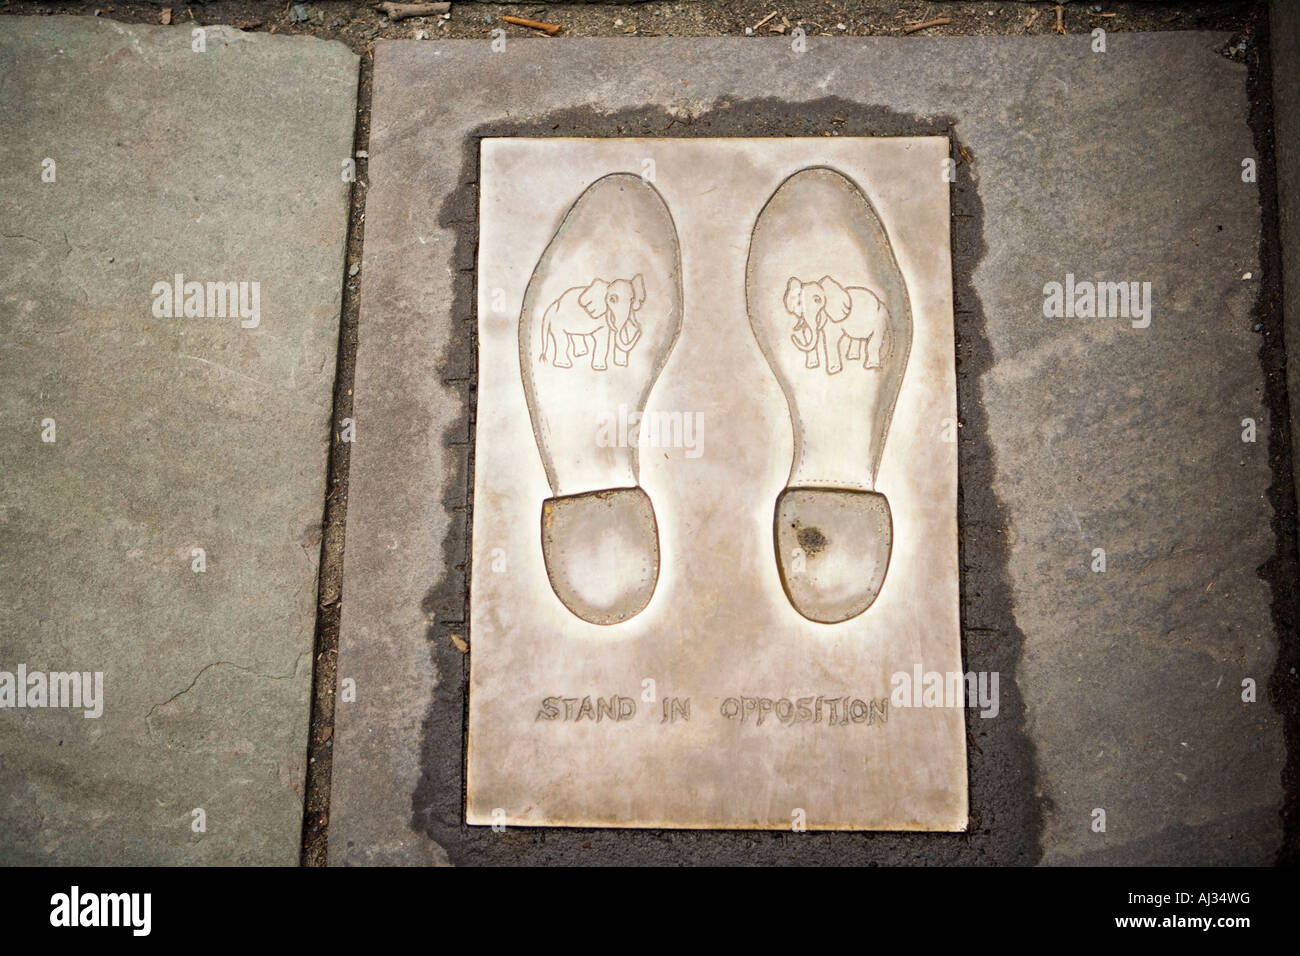 Stand In Opposition bronze footprints in front of the Democratic Party Donkey Old City Hall Boston Massachusetts - Stock Image